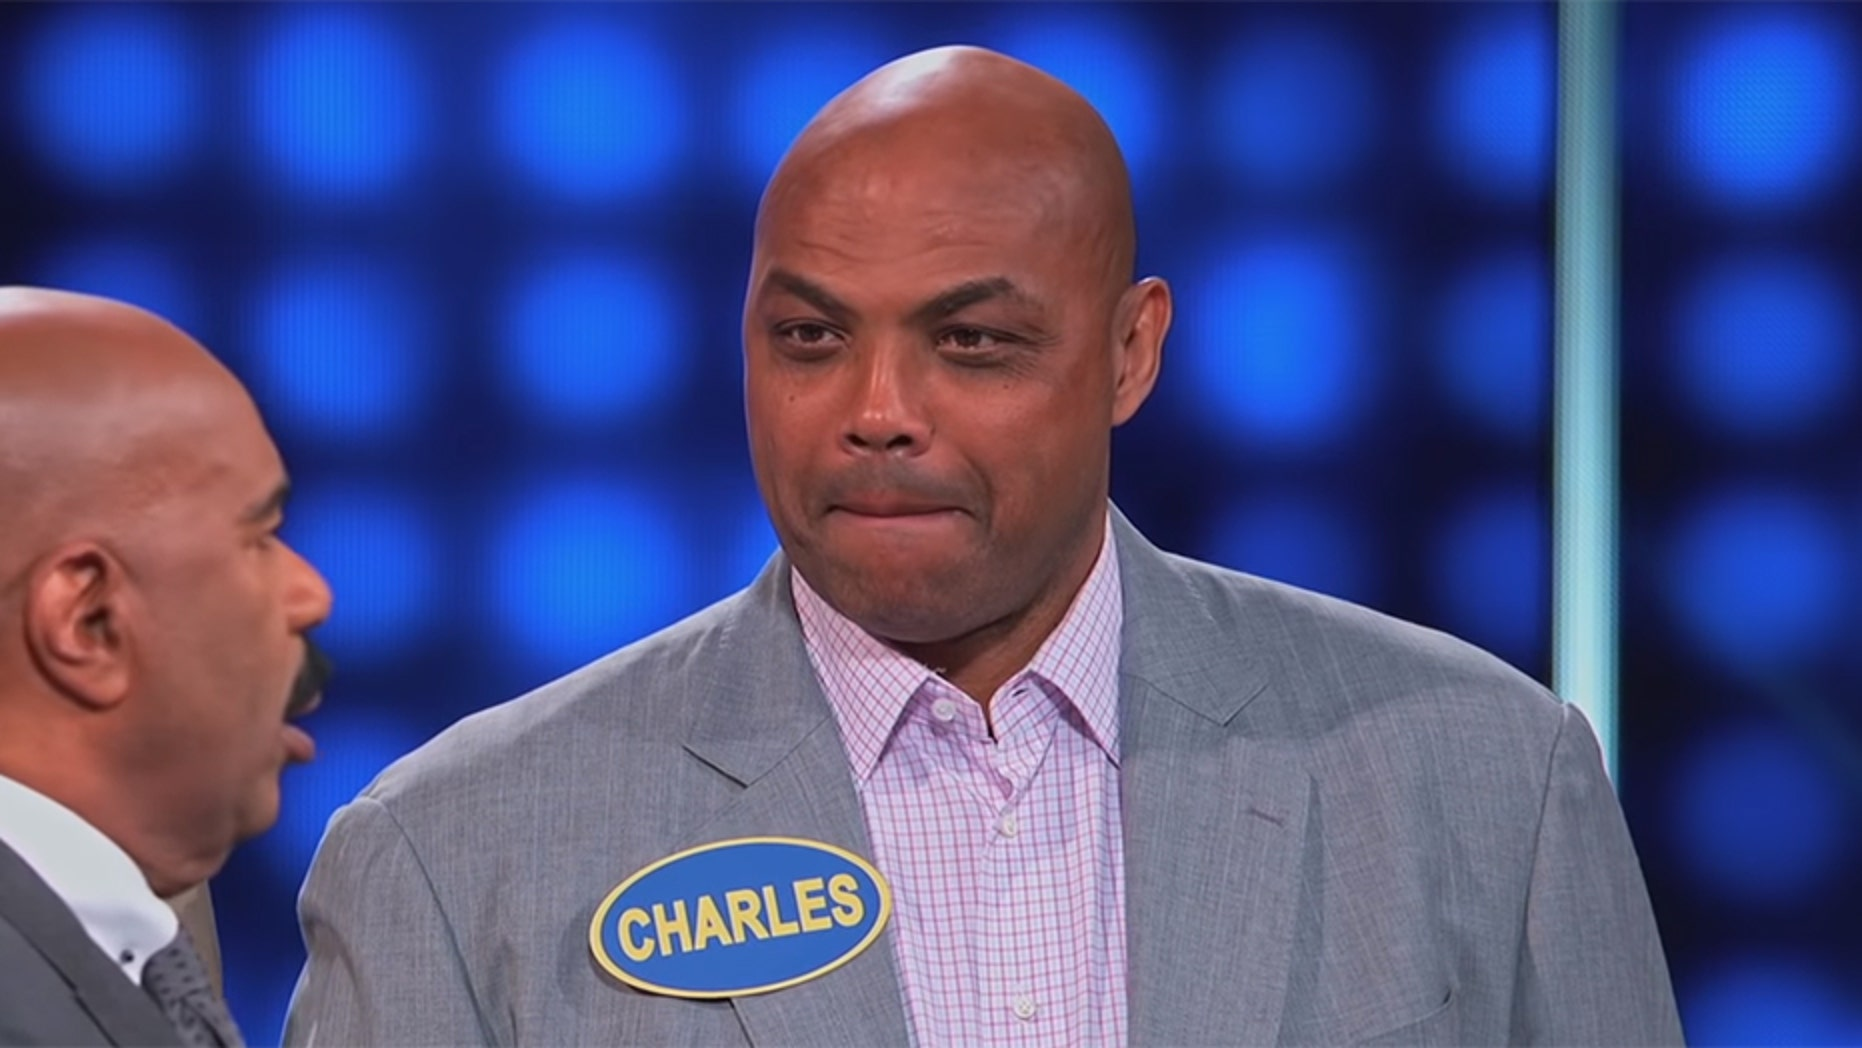 Charles Barkley stuns with strange answer on 'Celebrity Family Feud